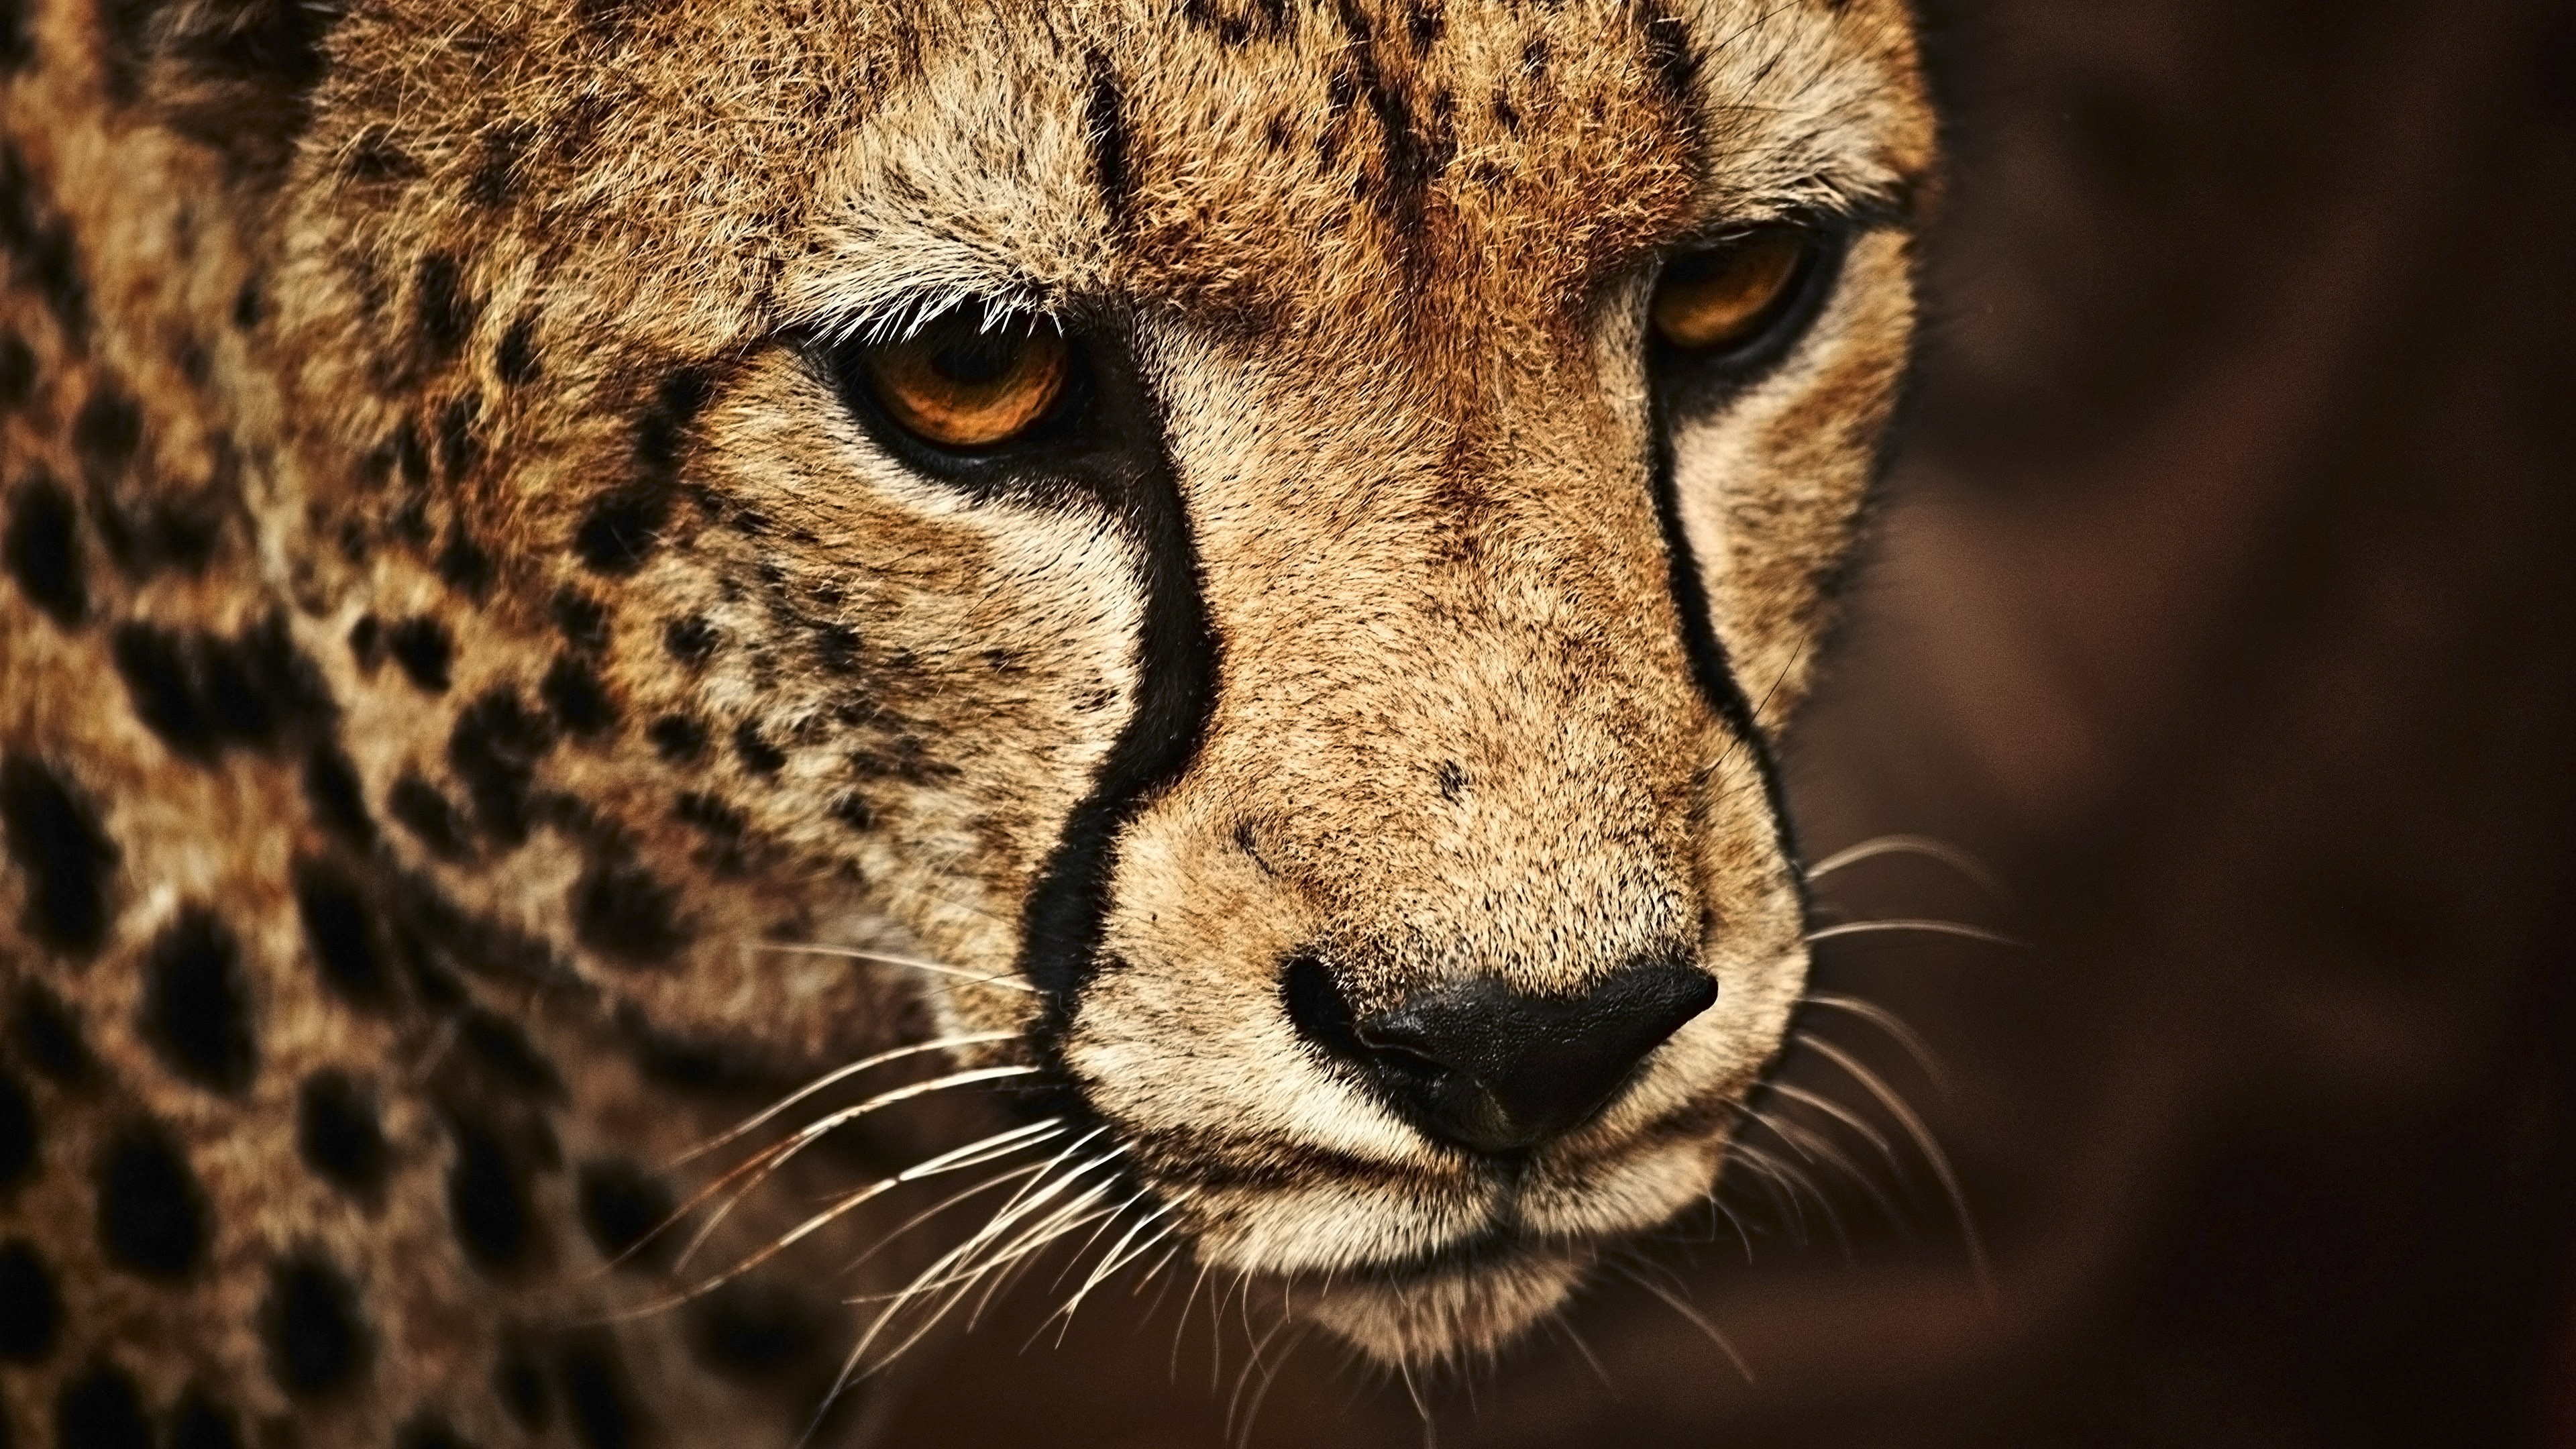 Best Hd Wallpapers Of Cars For Pc Wallpaper Cheetah Look Cute Animals Animals 5374